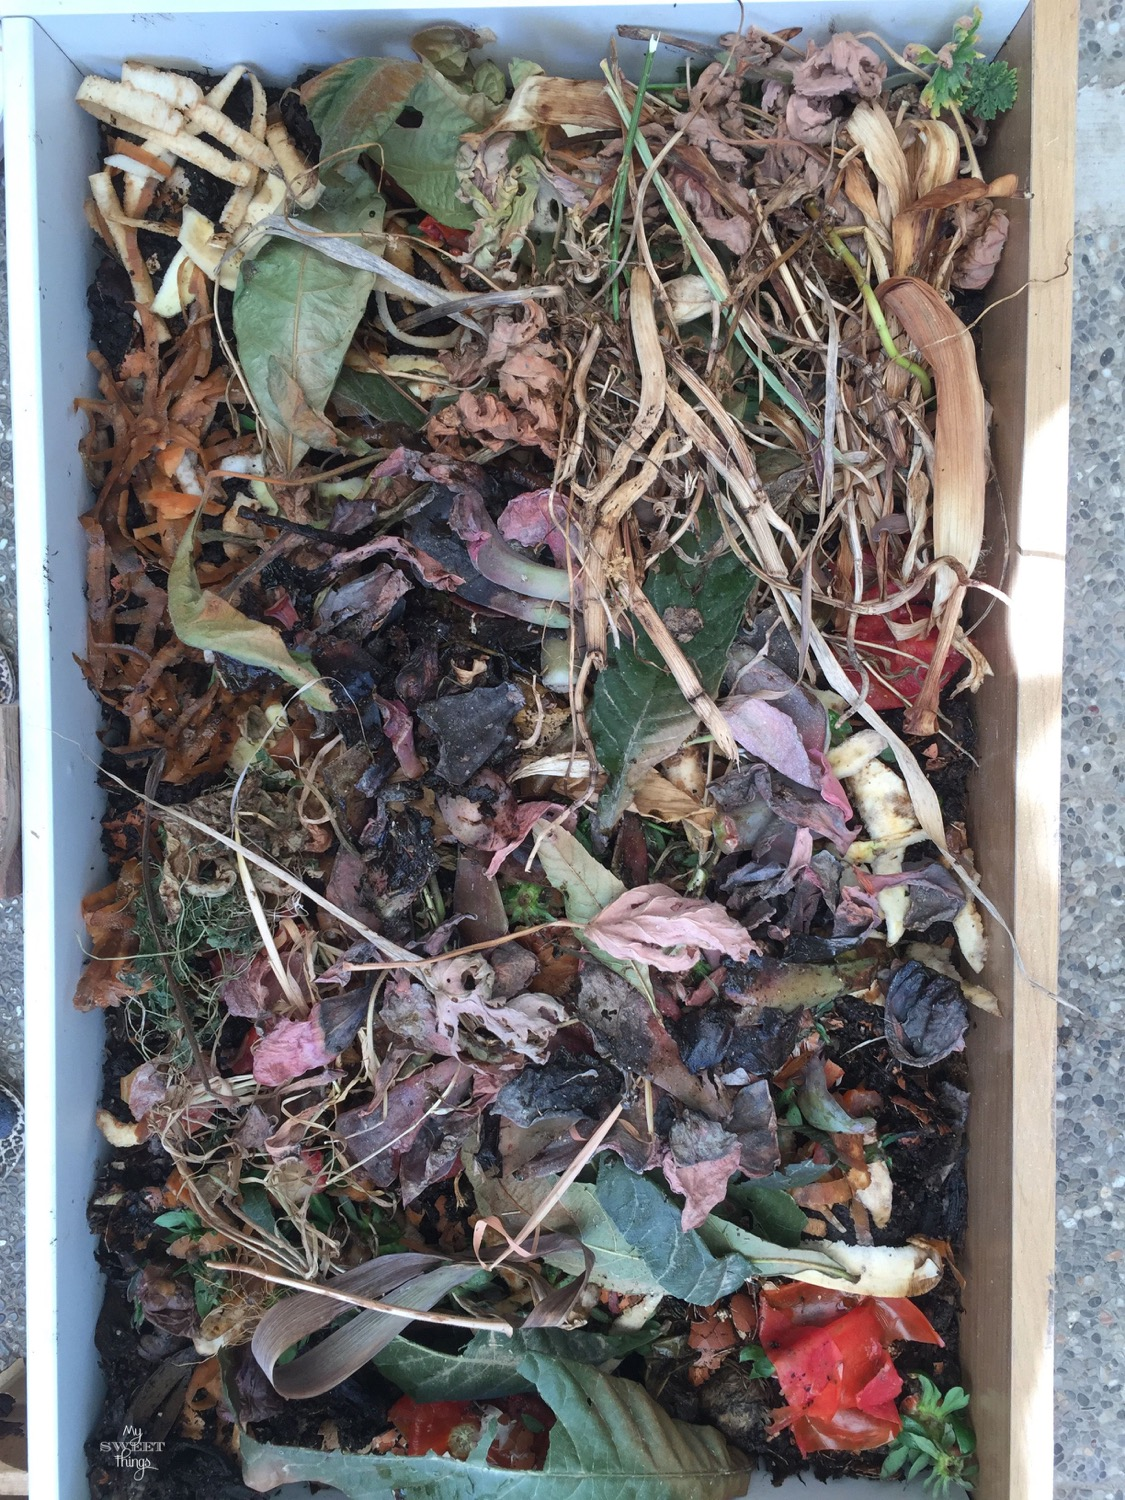 DIY Worm Compost Bin for vermicomposting · Via www.sweethings.net #compost #hummus #compostin #vermicomposting